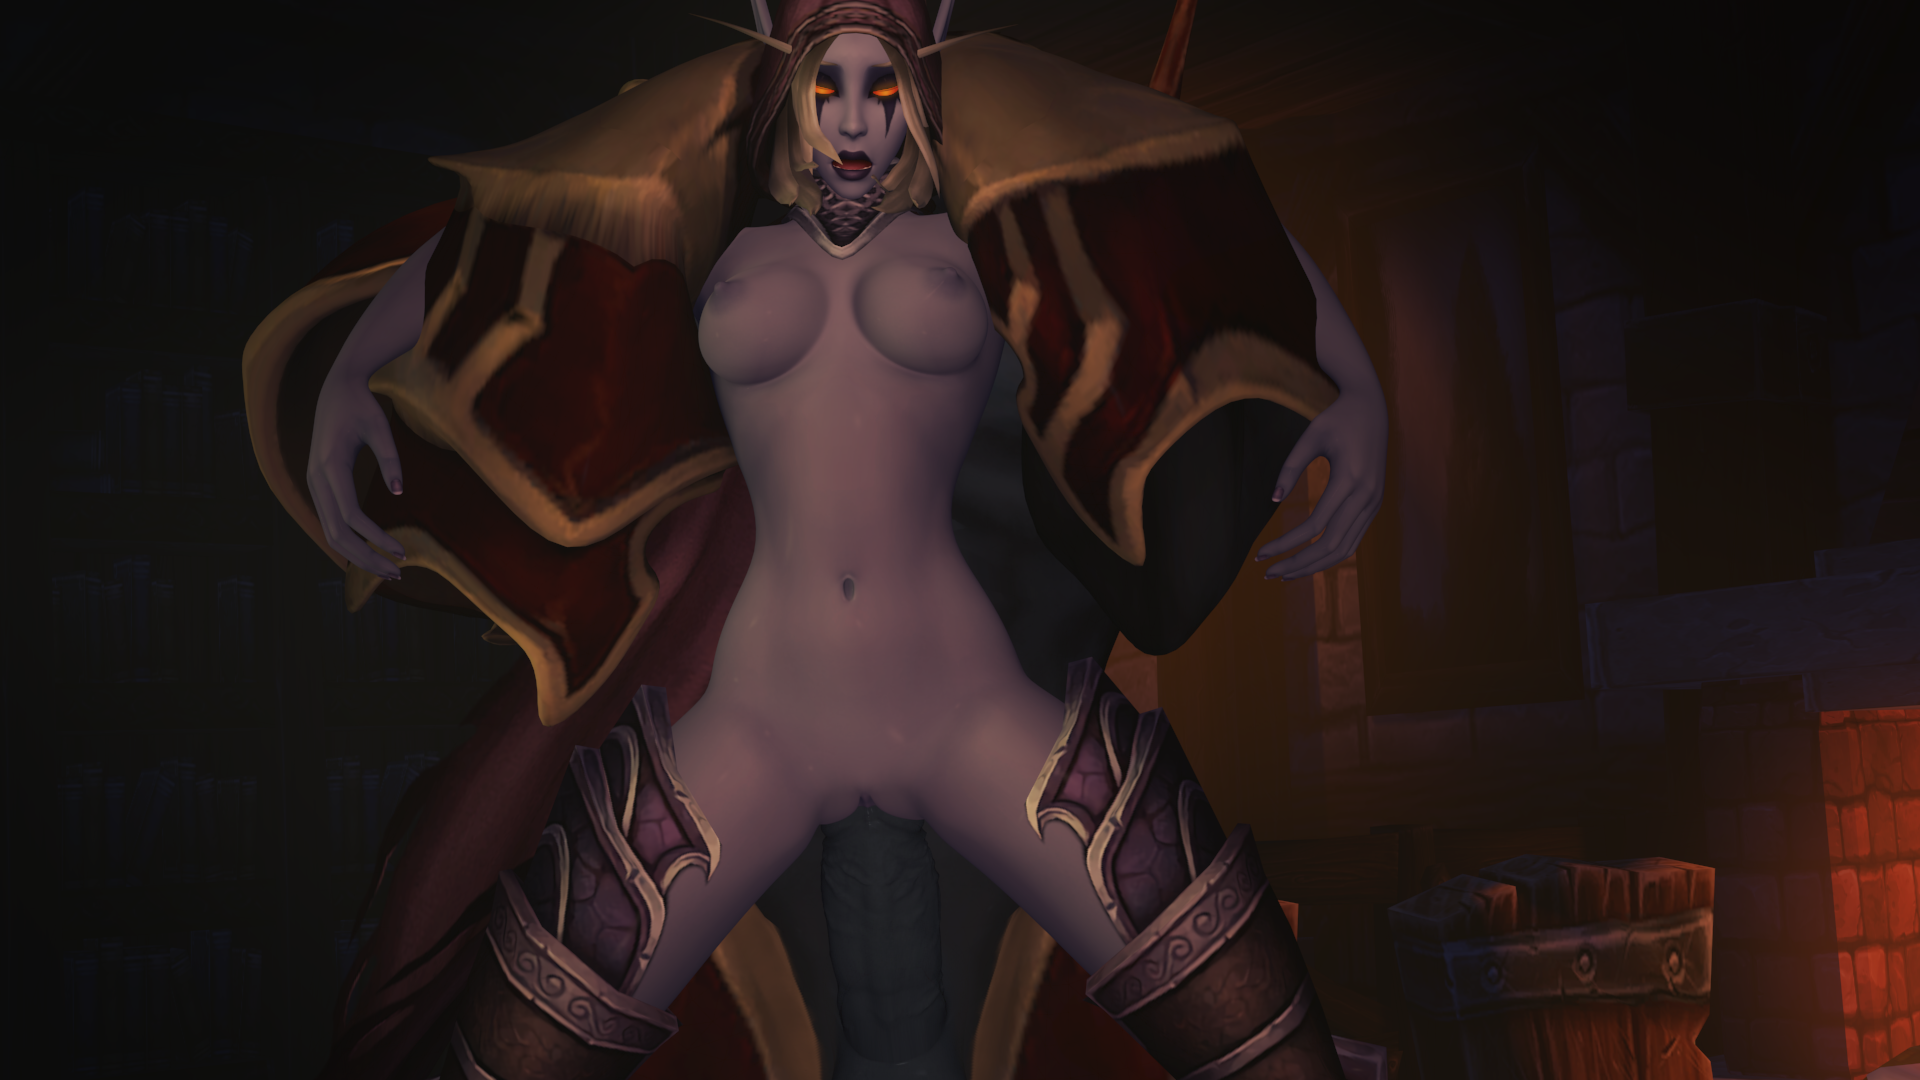 Sylvanas windrunner pornpics nsfw photos